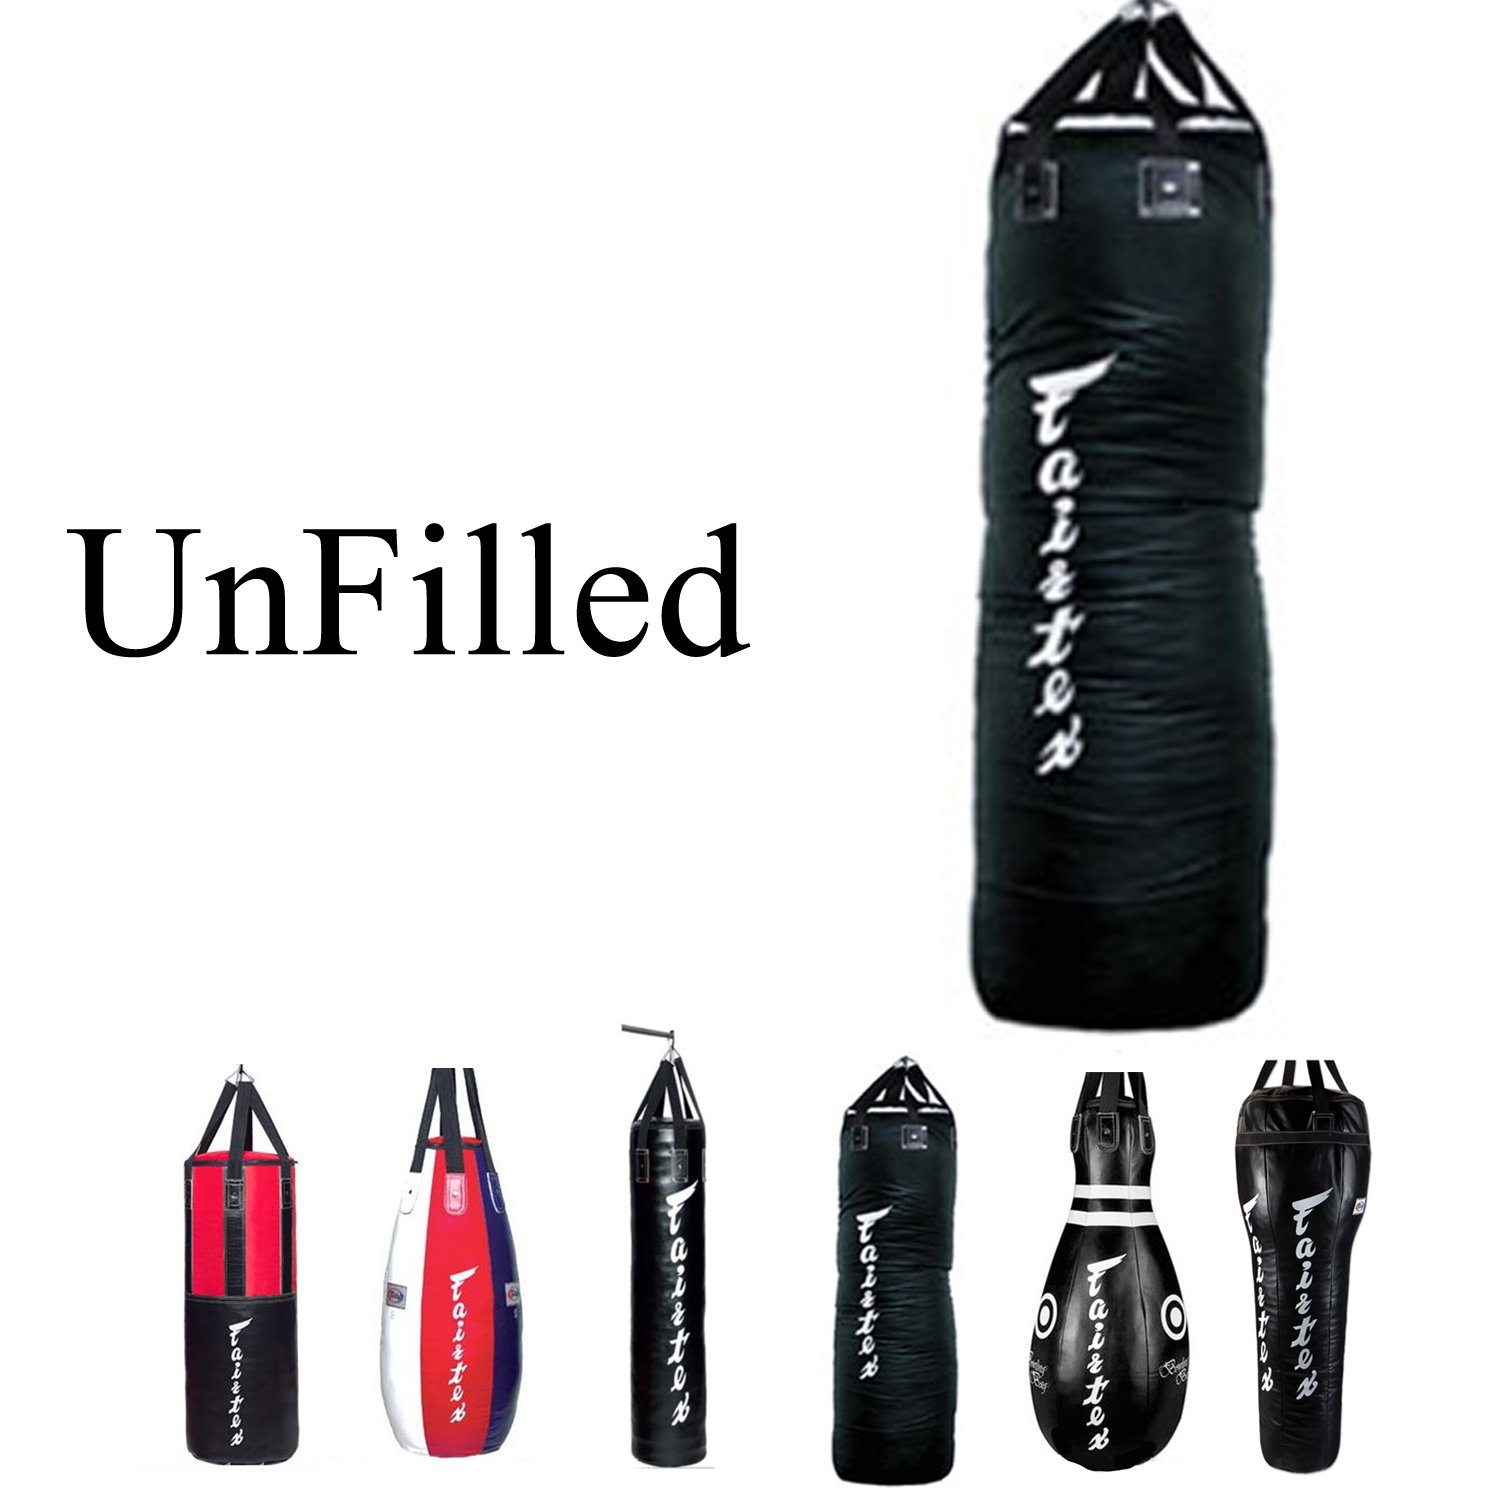 FAIRTEX HB15 TEAR DROP BAG PUNCH MUAY THAI MMA BOXING UNFILLED EXPRESS SHIPPING